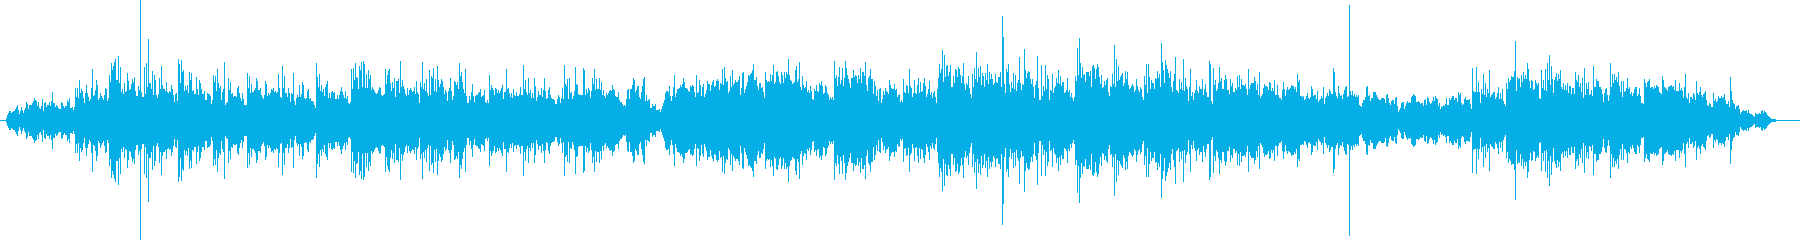 Mysterious slow tempo BGM's reproduced waveform